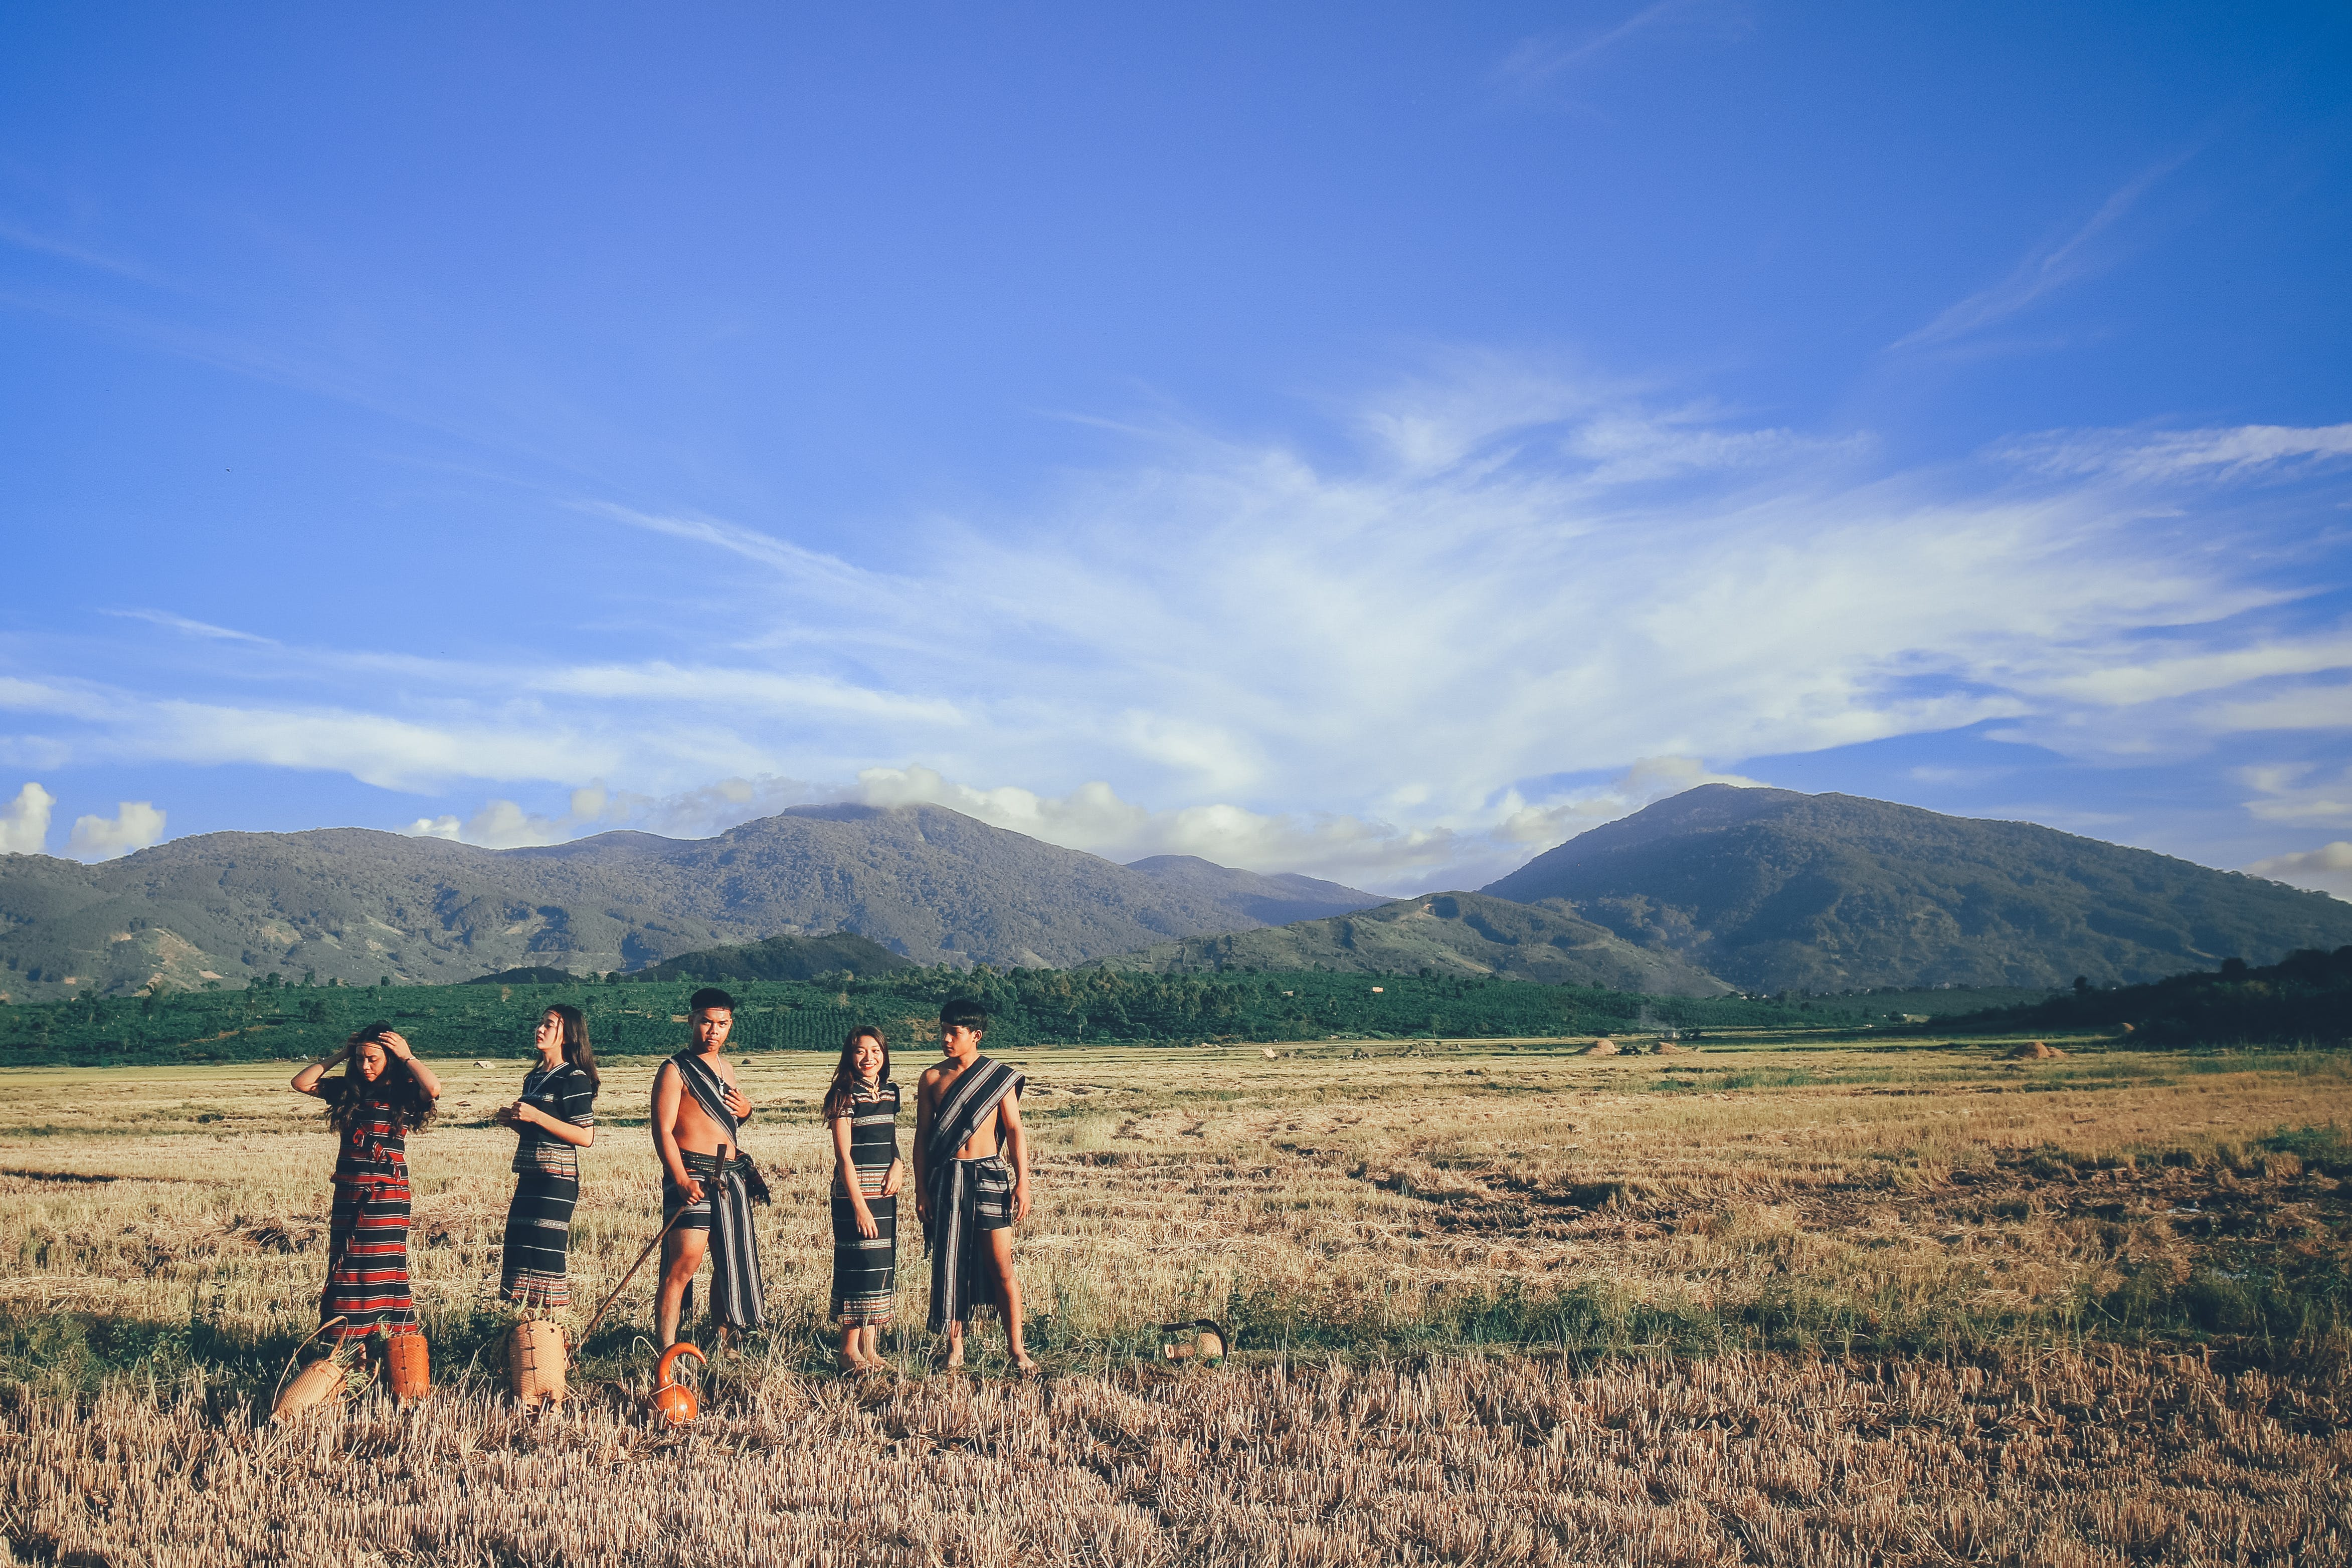 Five People Wearing Native Apparel Standing on Brown Grassfield Under Blue and White Cloudy Sky